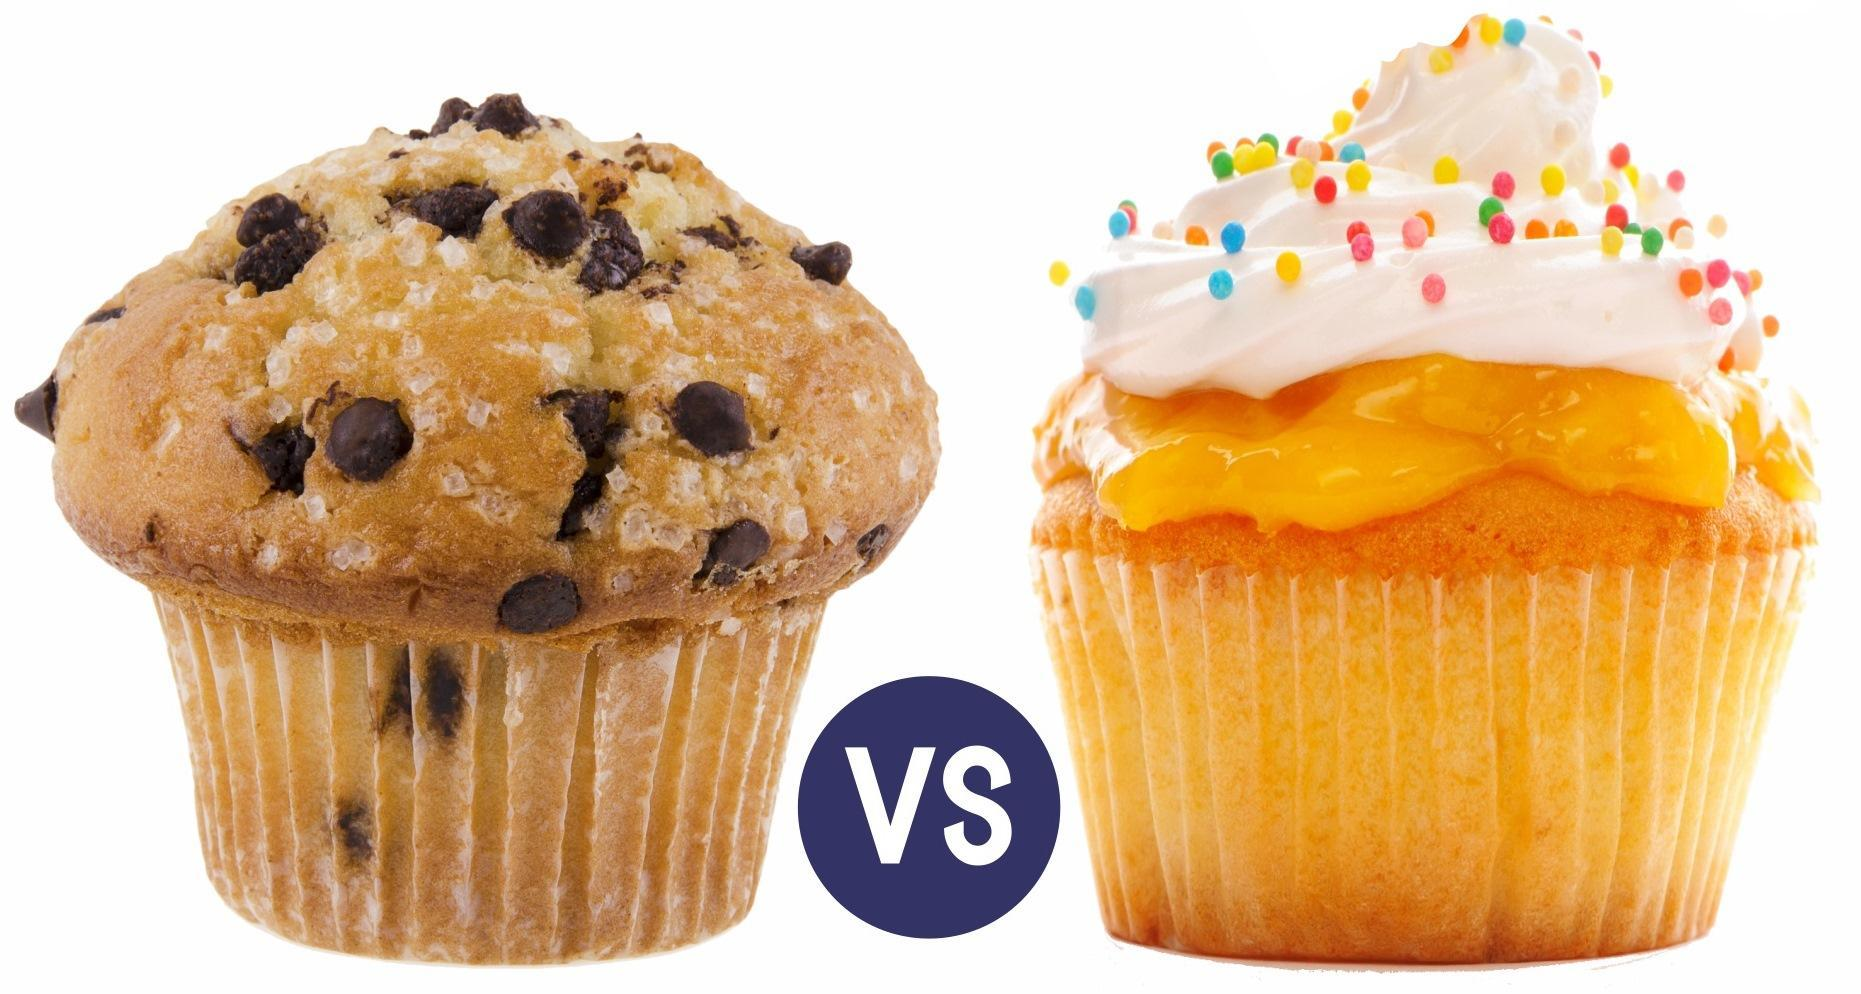 Cupcakes or Muffins?